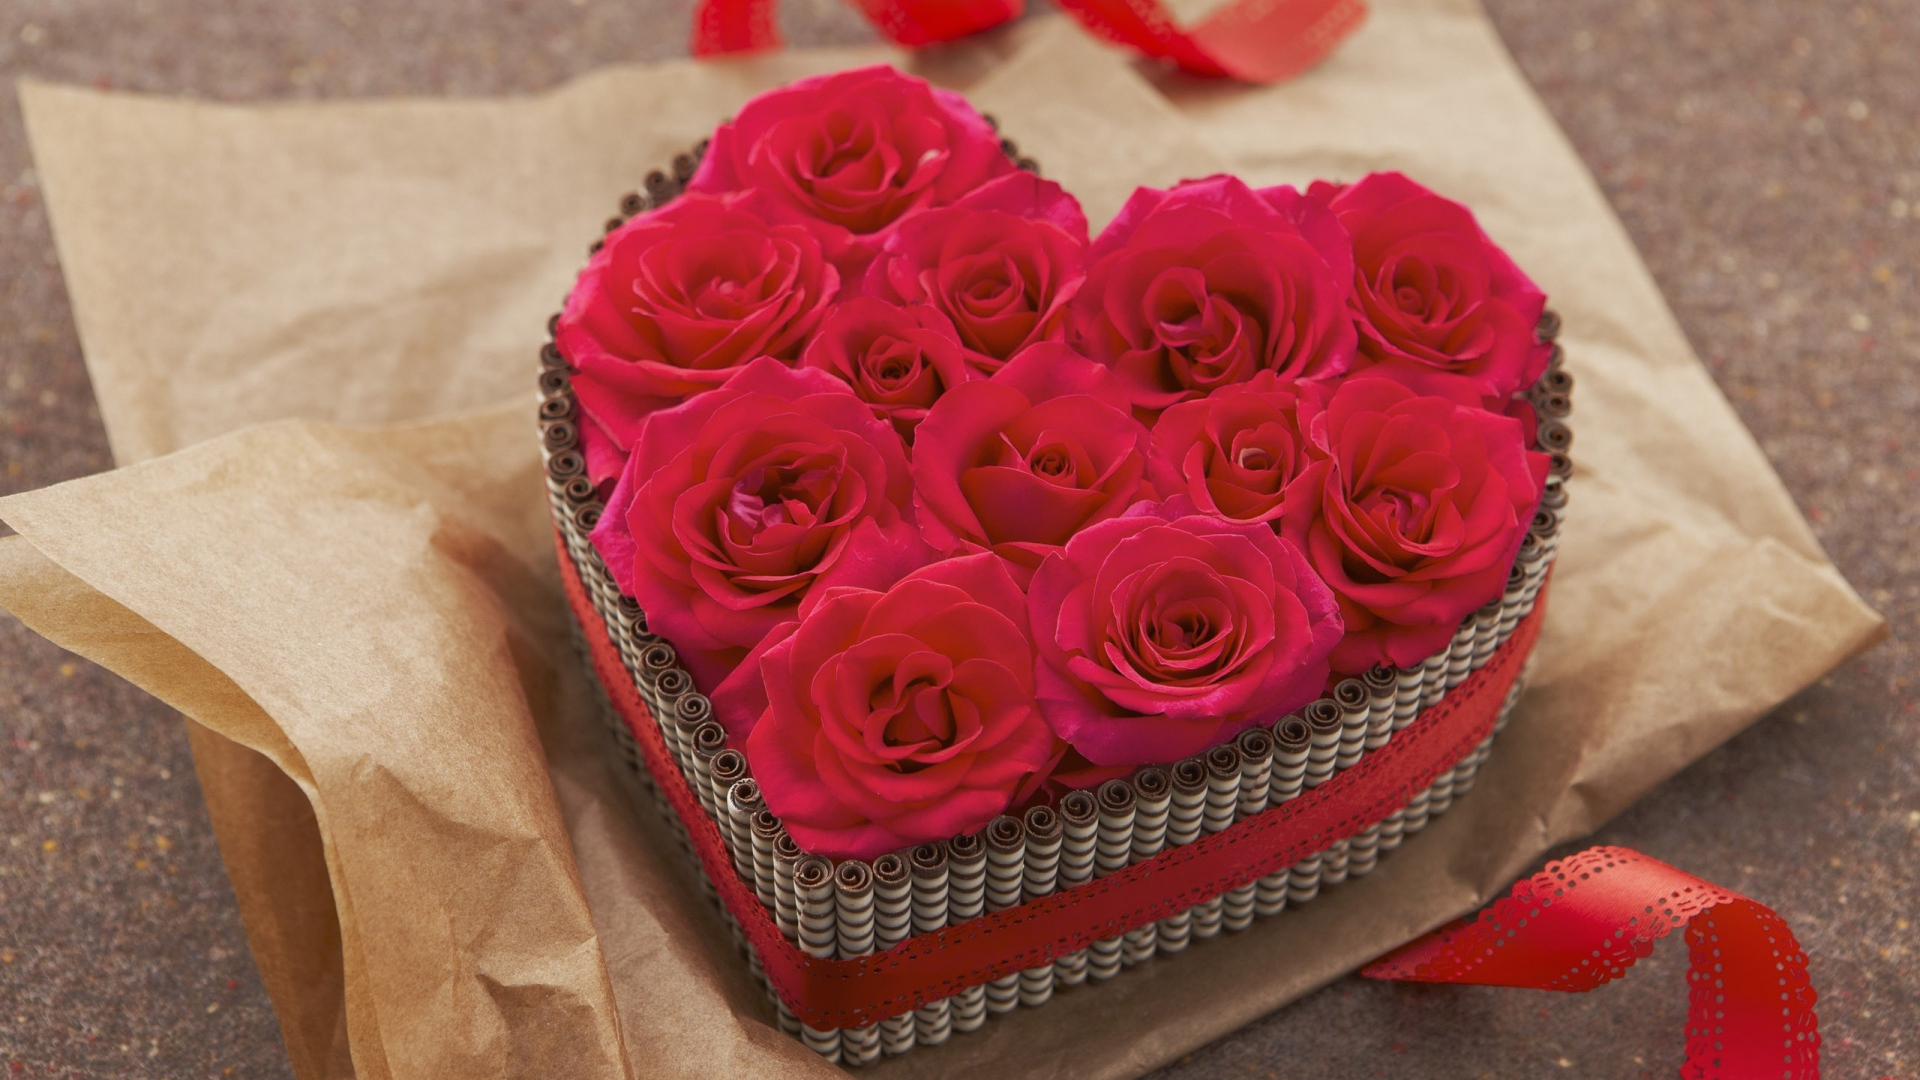 Download wallpaper 1920x1080 gift box roses red full hd 1080p hd gift box roses negle Gallery